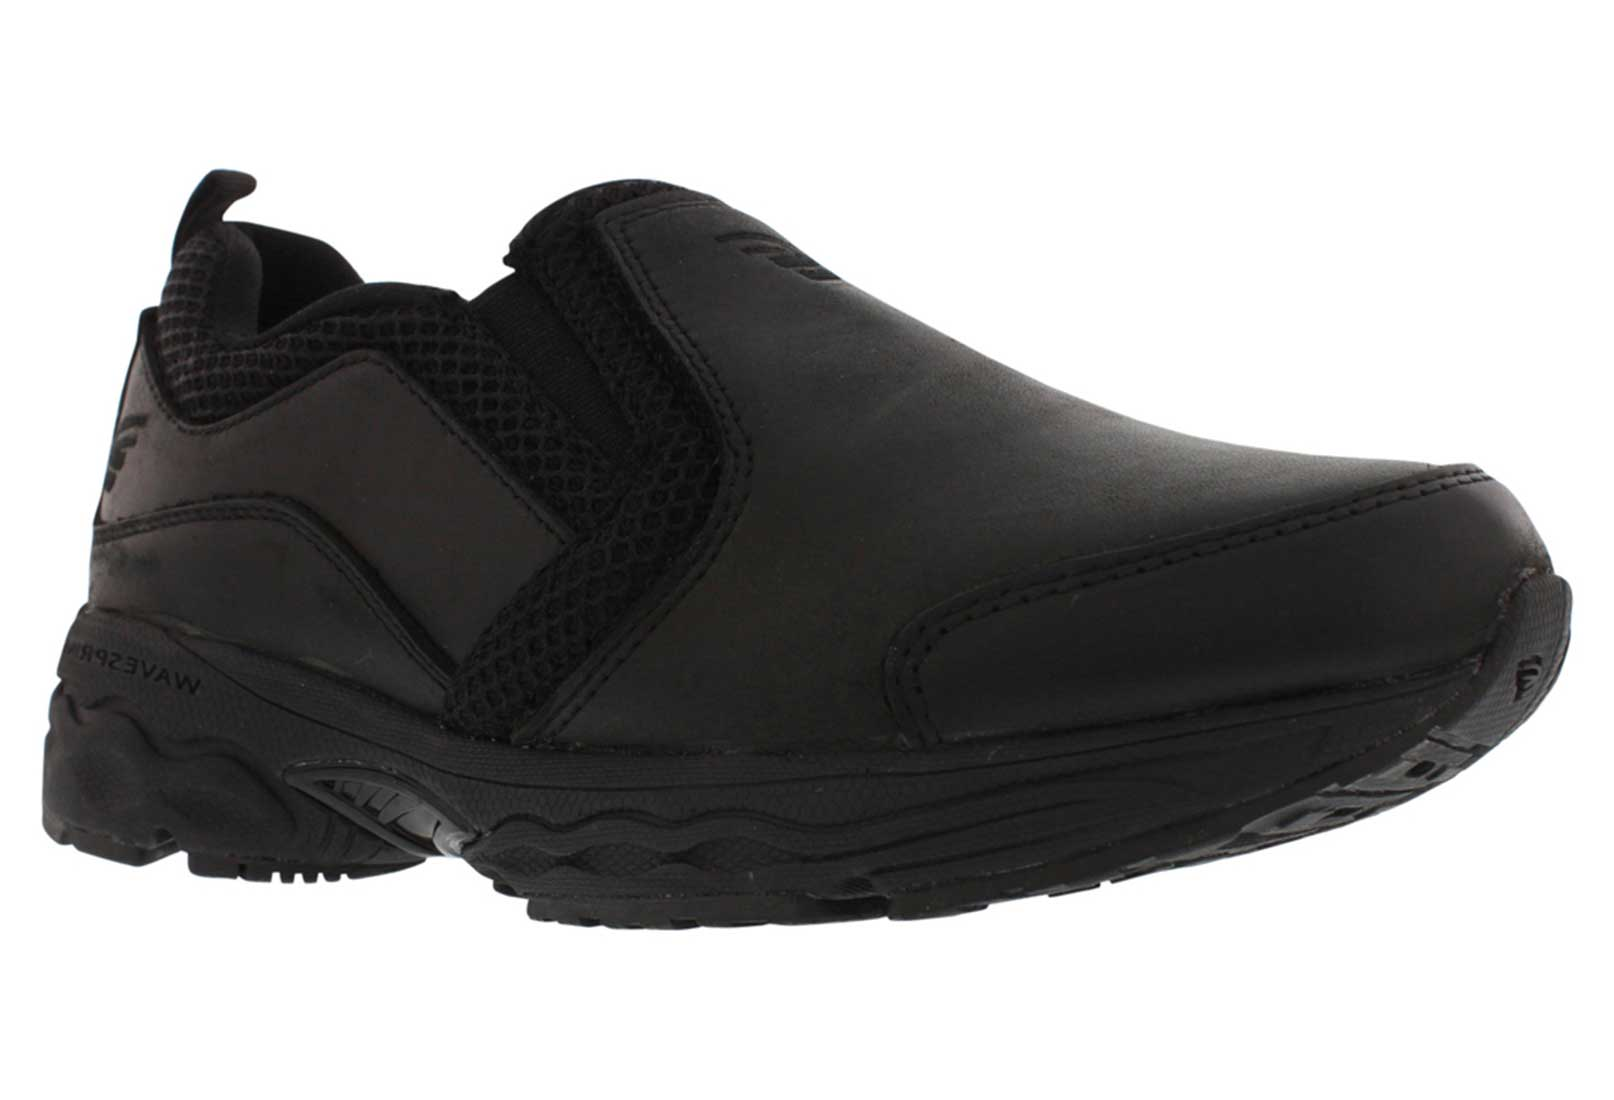 Spira Footwear - Womens Taurus Leather Moc Walking Shoe